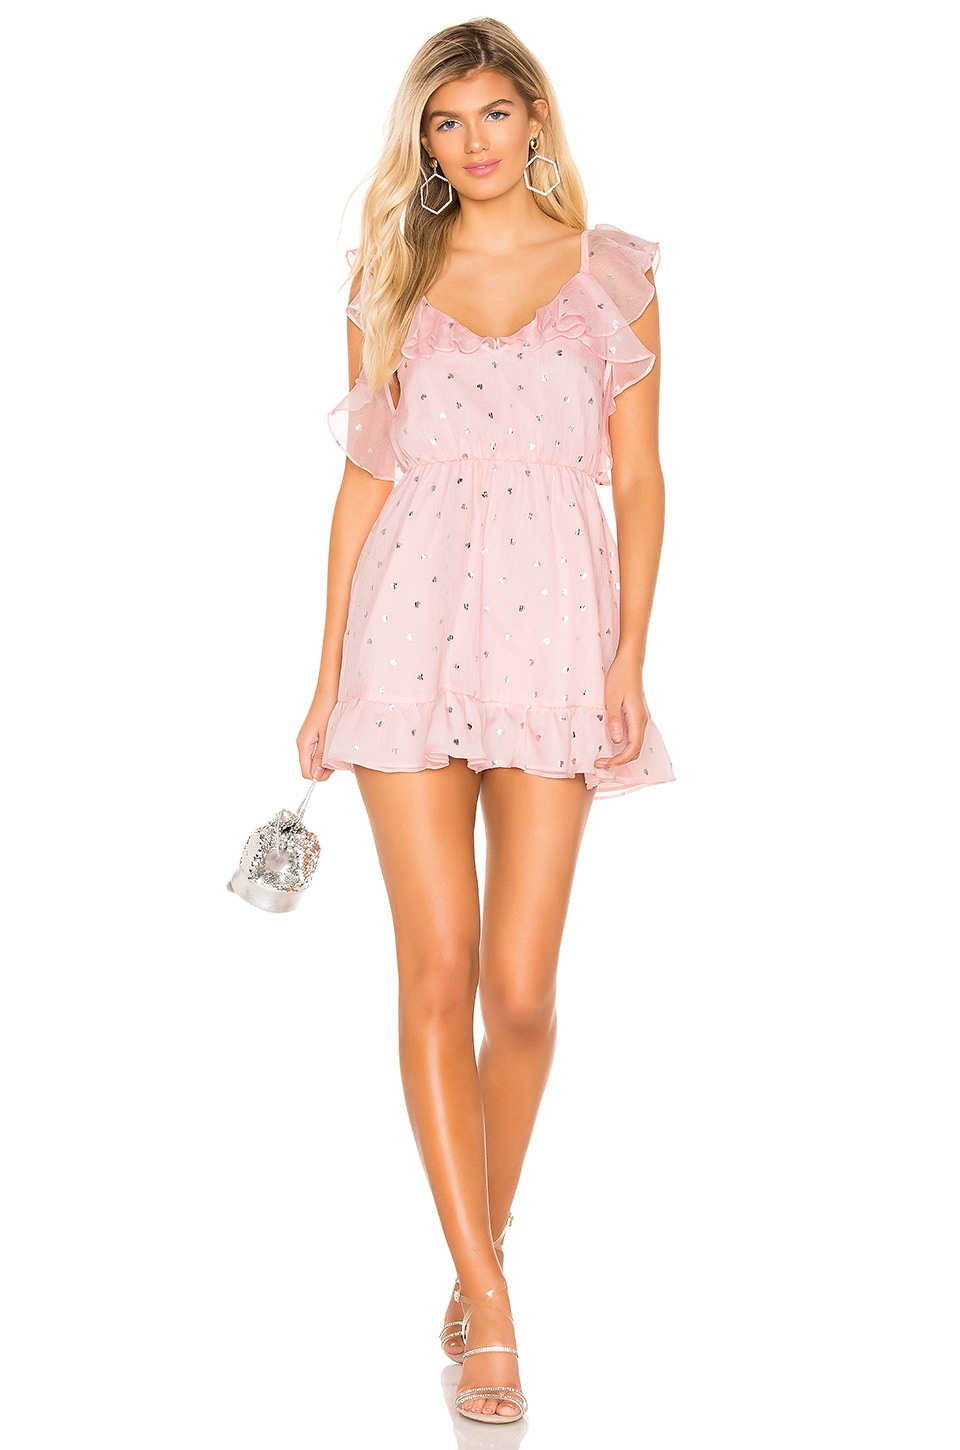 Lovers + Friends Austin Mini Dress in Powder Pink